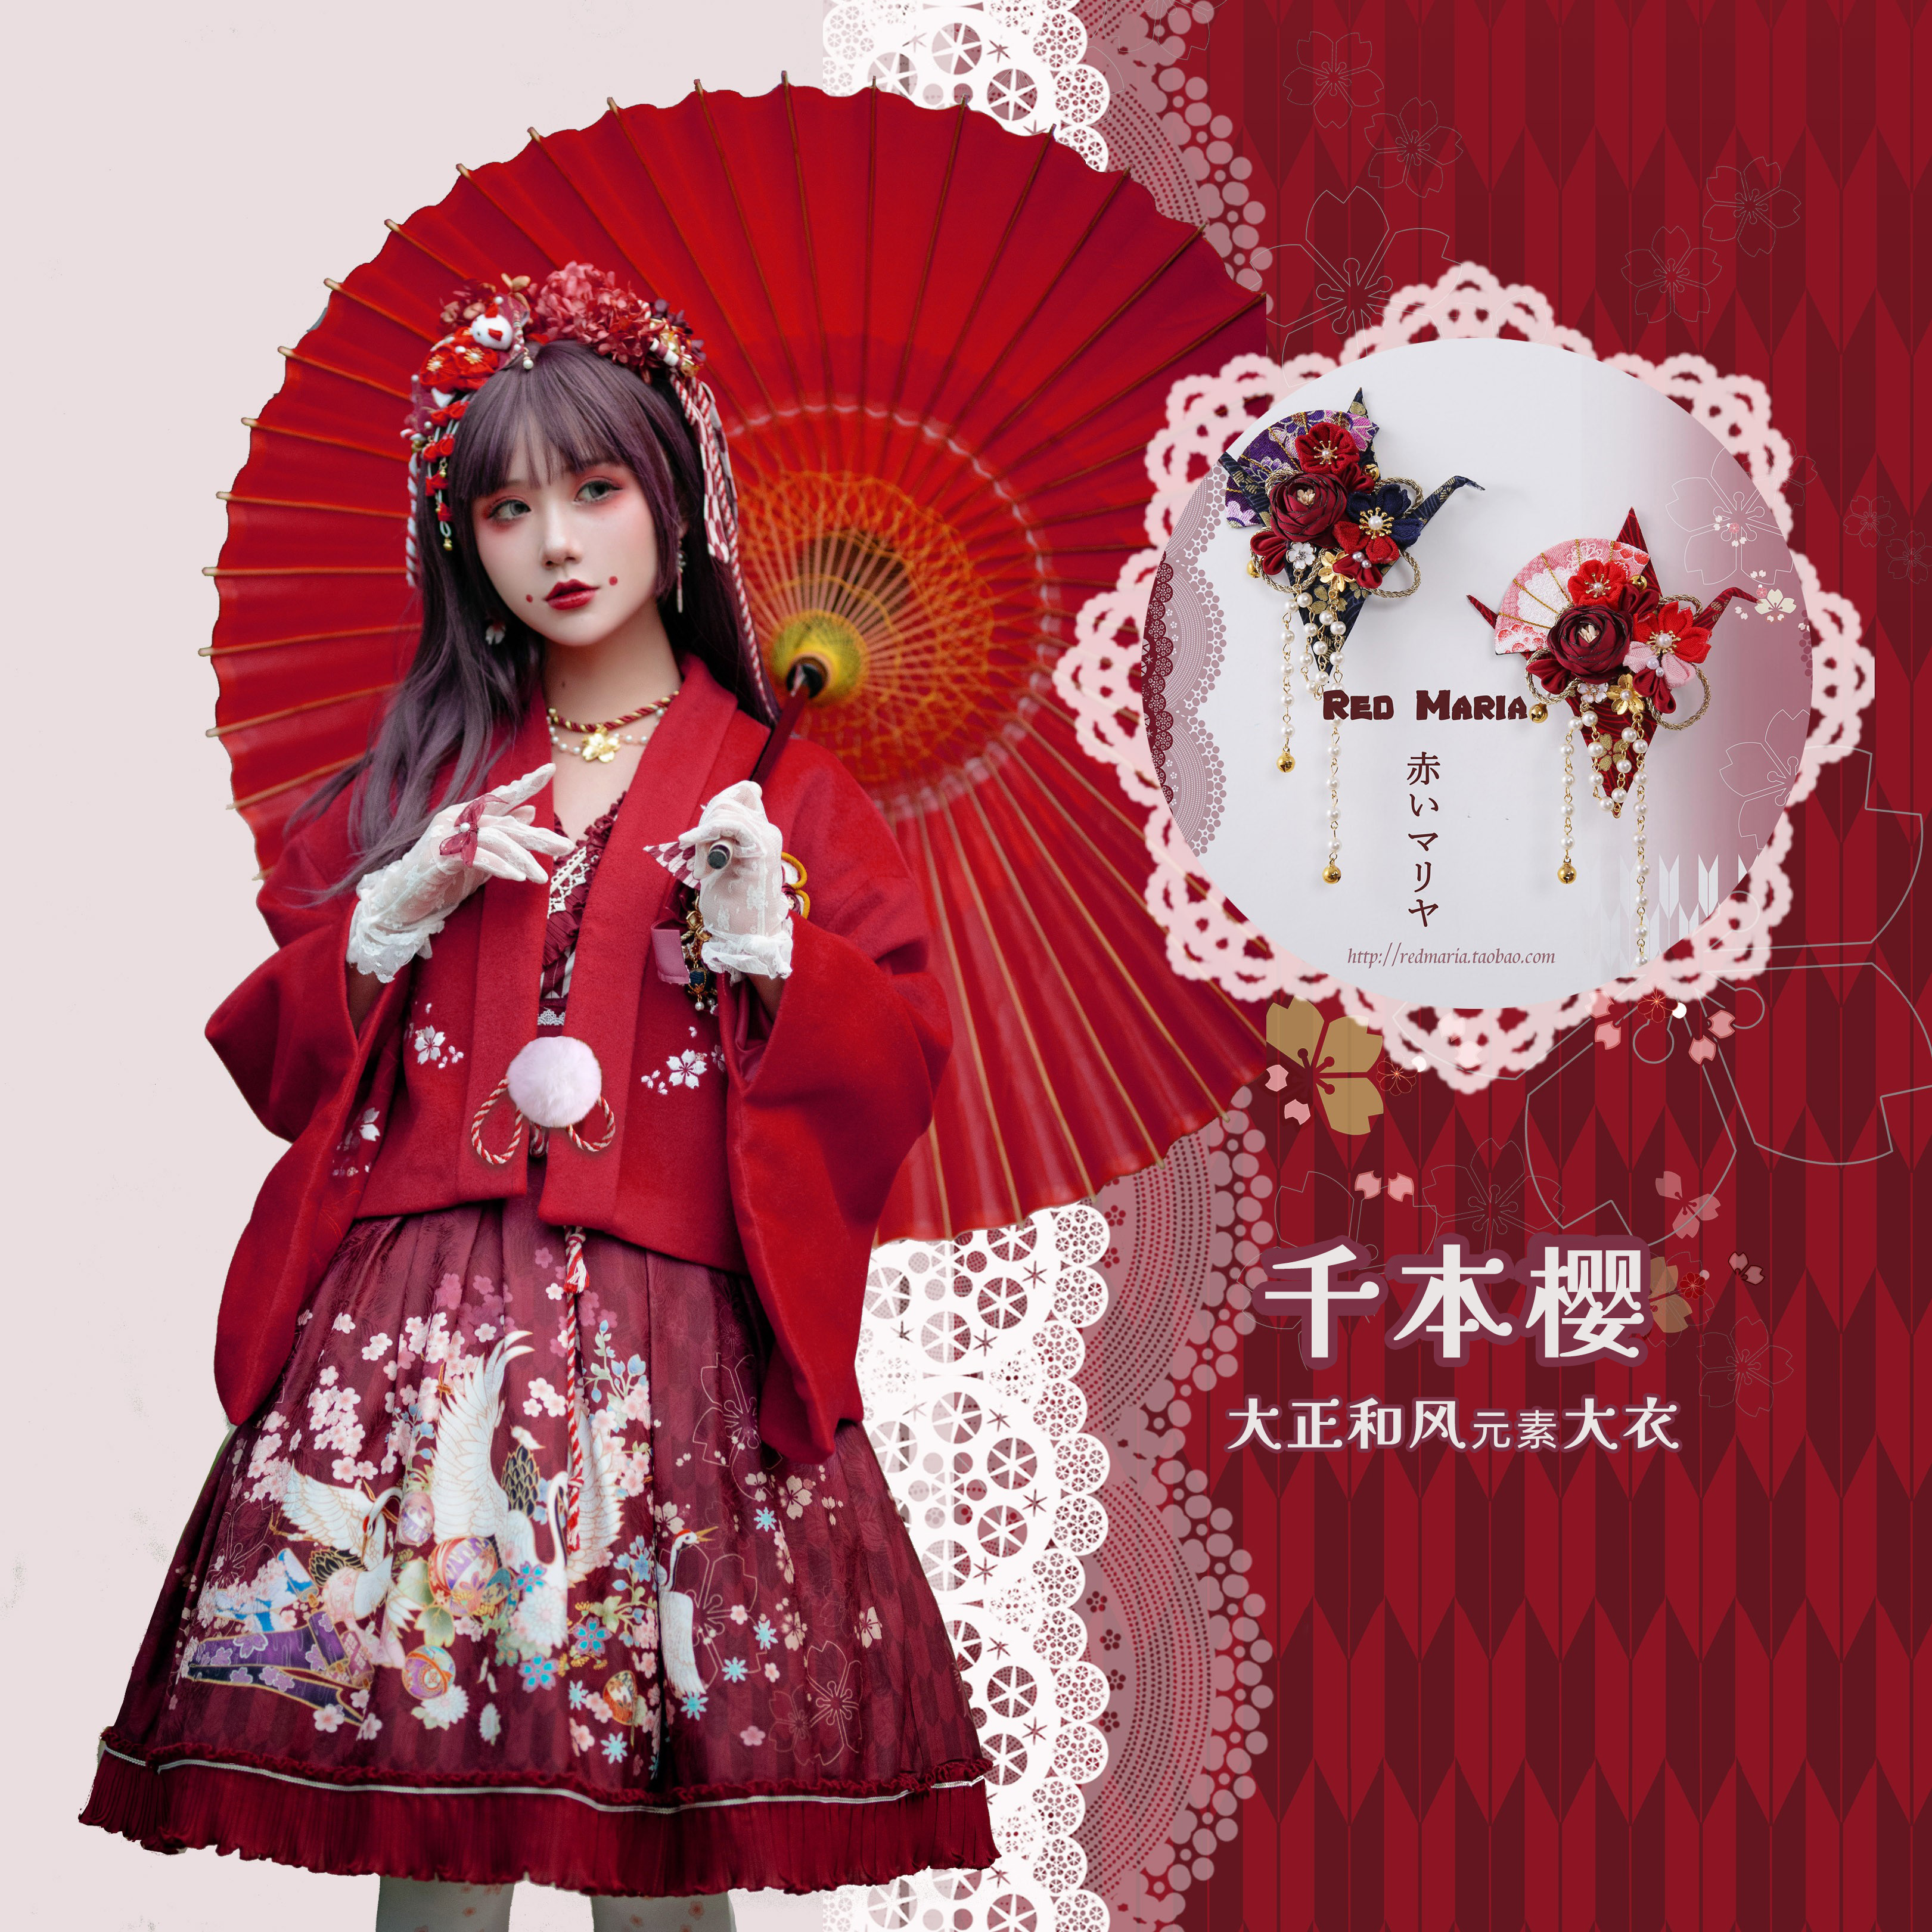 Red Maria red Mary Lolita Dazheng hefengyu embroidered thousand cherry coat in stock